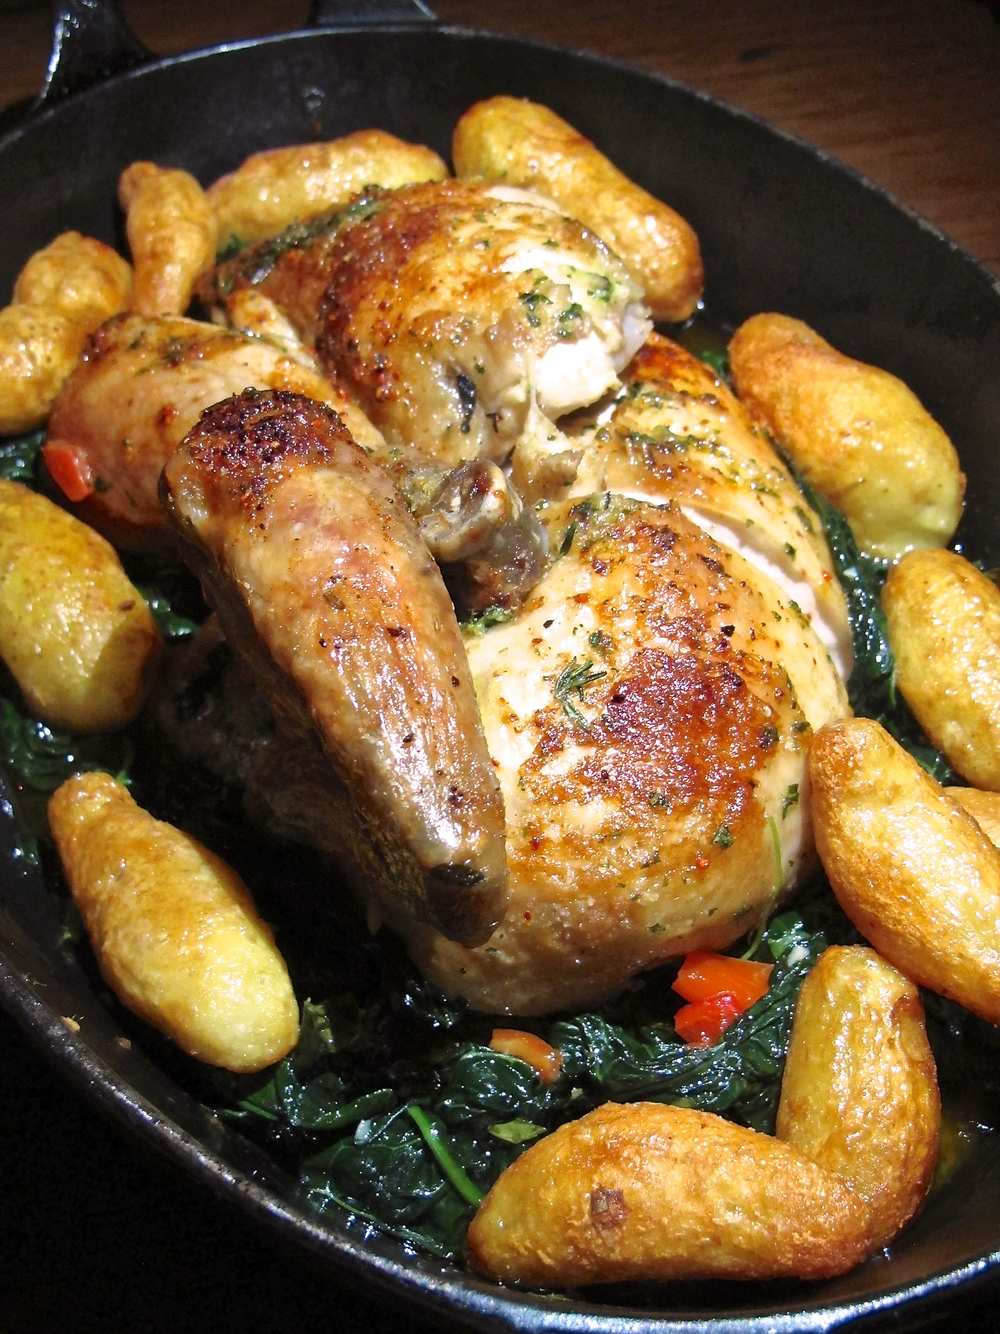 Republique's rotisserie chicken